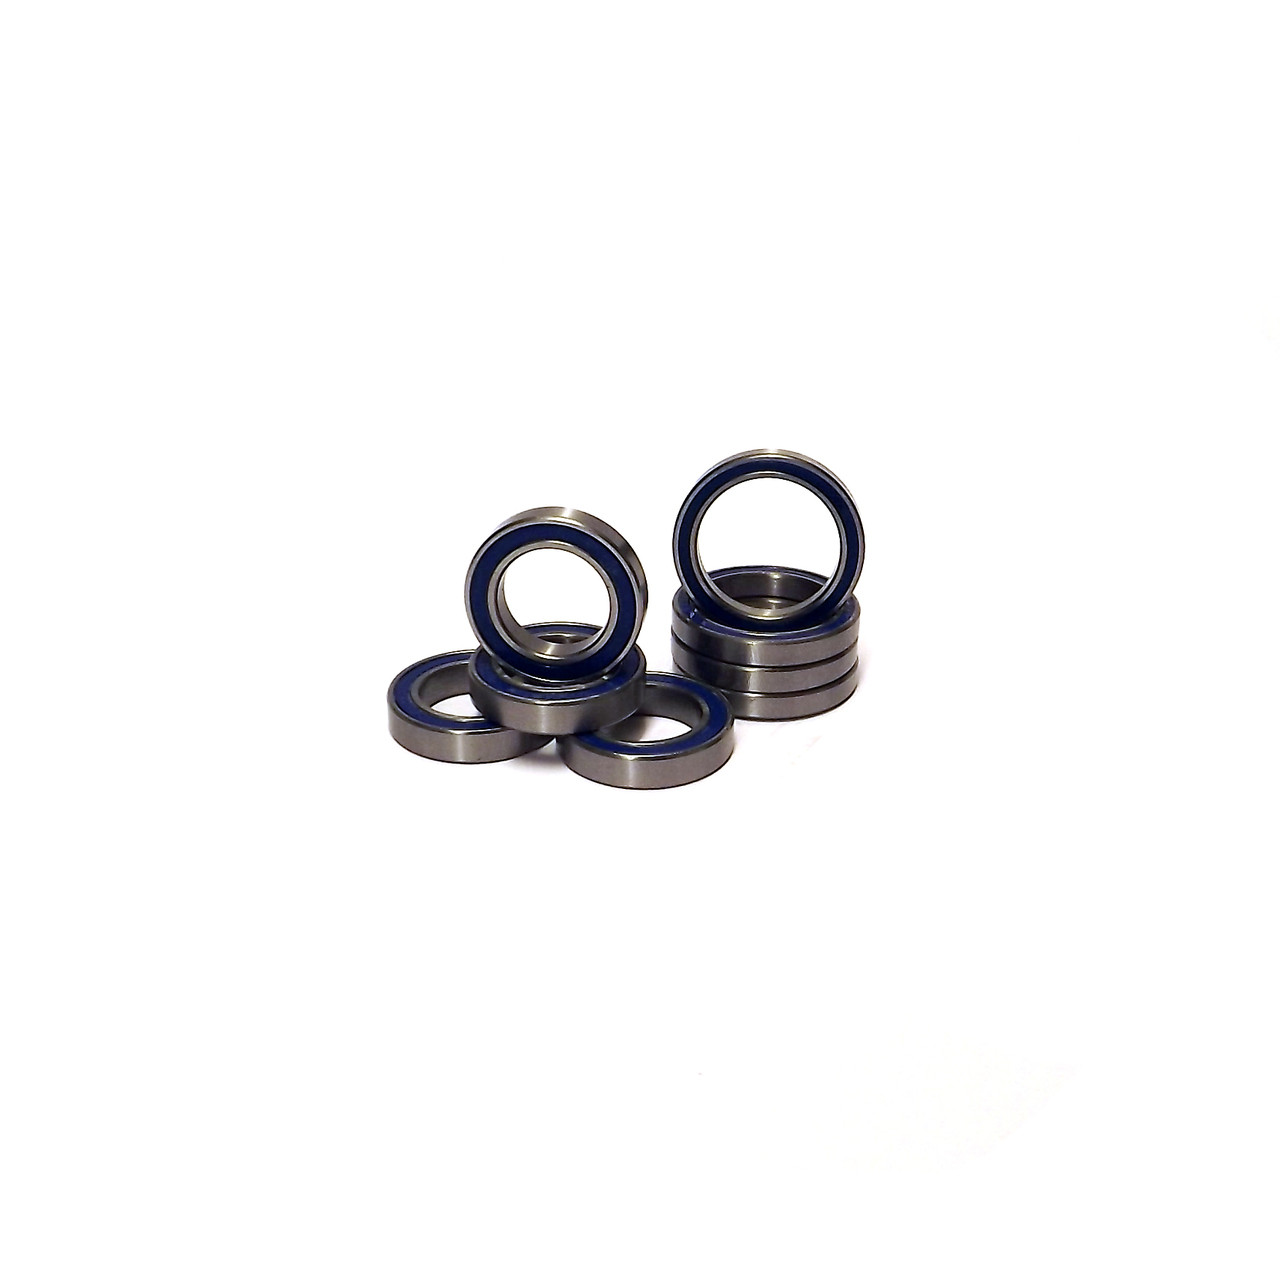 Traxxas X-MAXX Blue Rubber sealed wheel bearings.  8 pcs. Includes 4-12x24x5 mm and 4-20x27x4 mm Bearings.